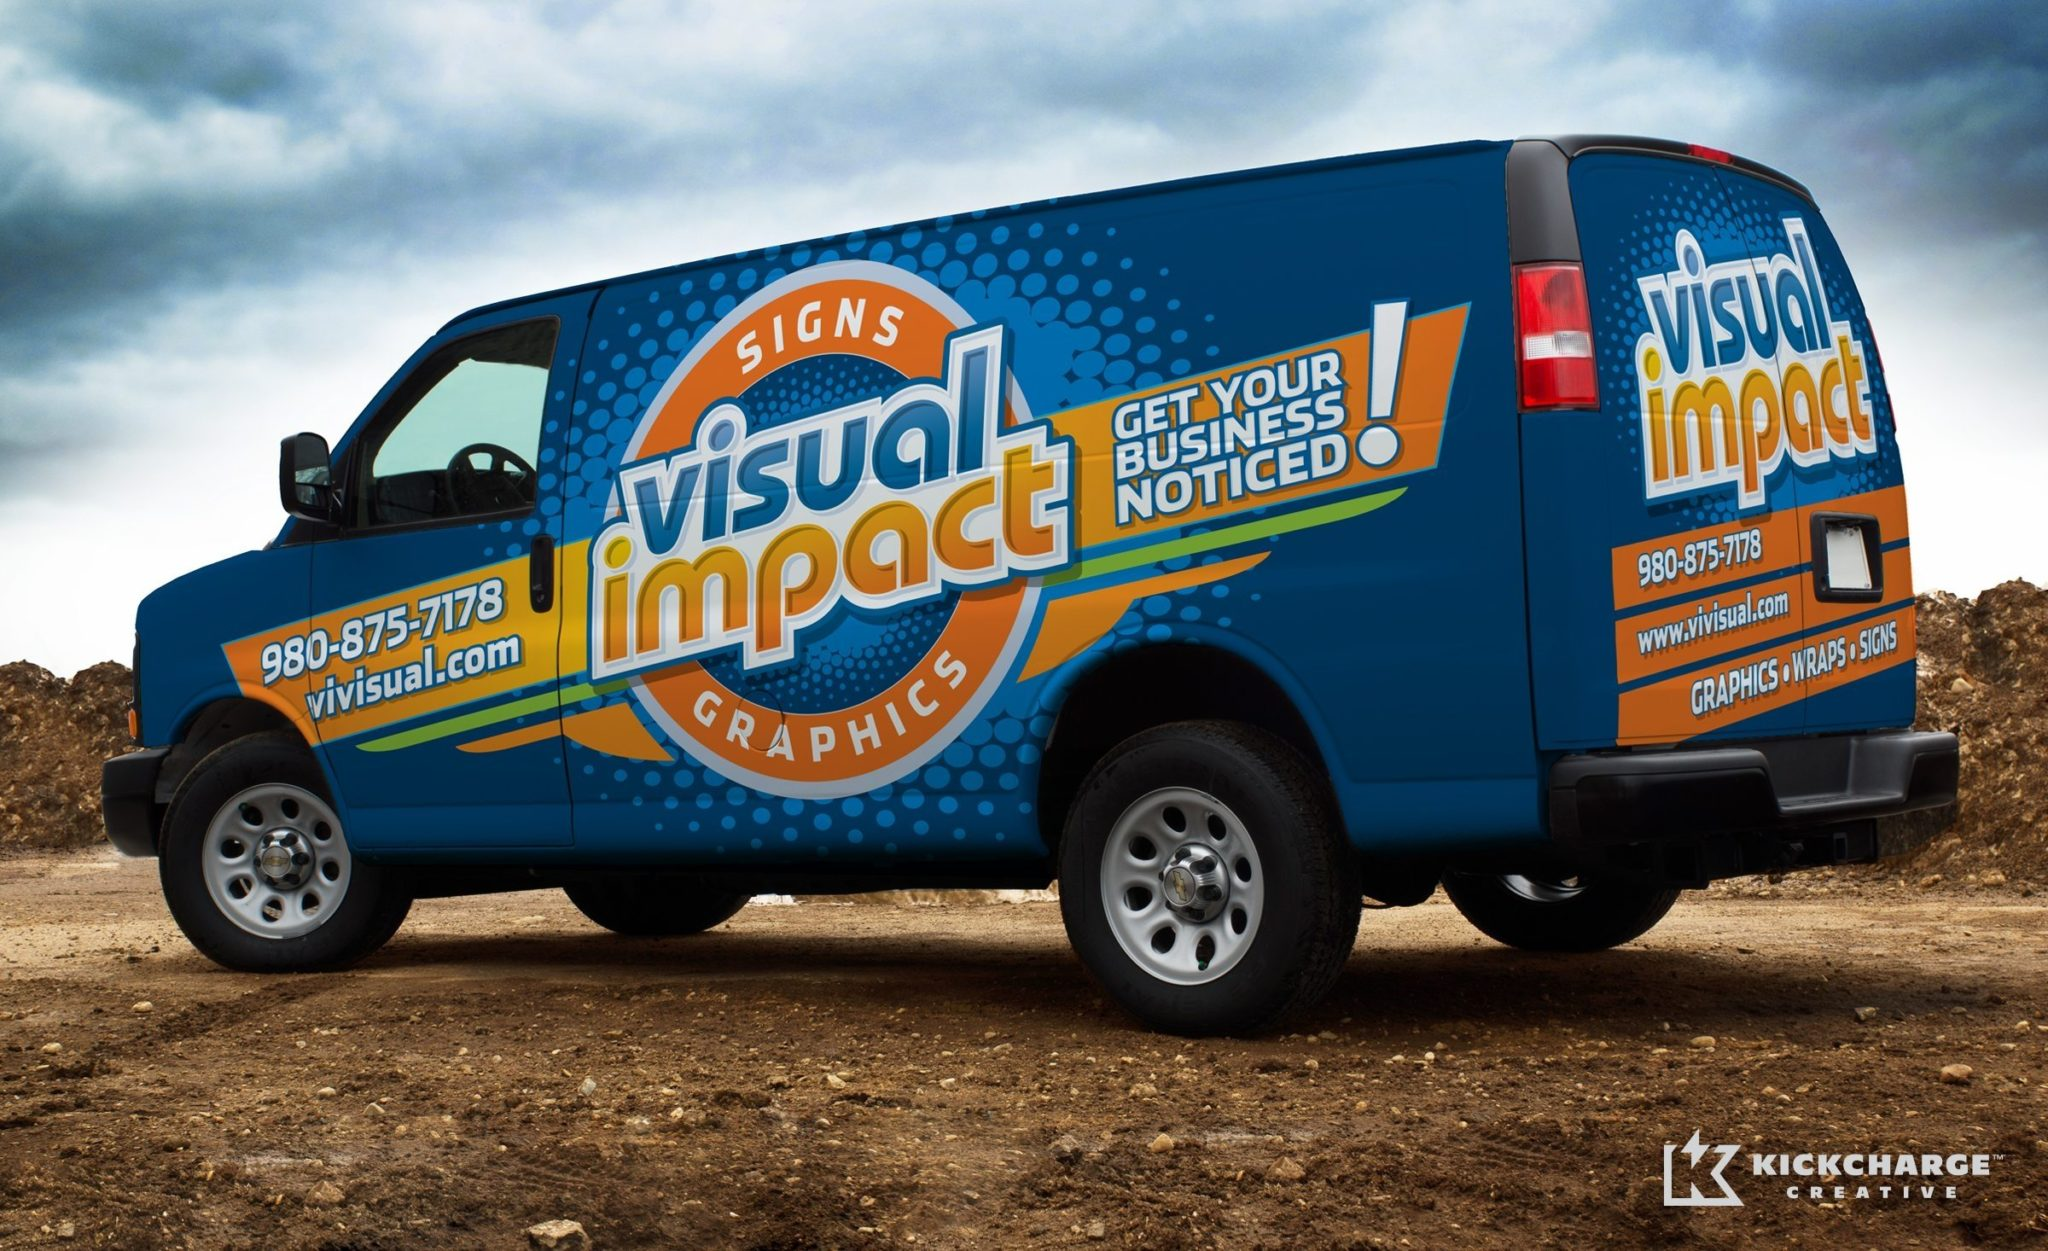 Fleet wrap design for a sign company located in Charlotte, NC.